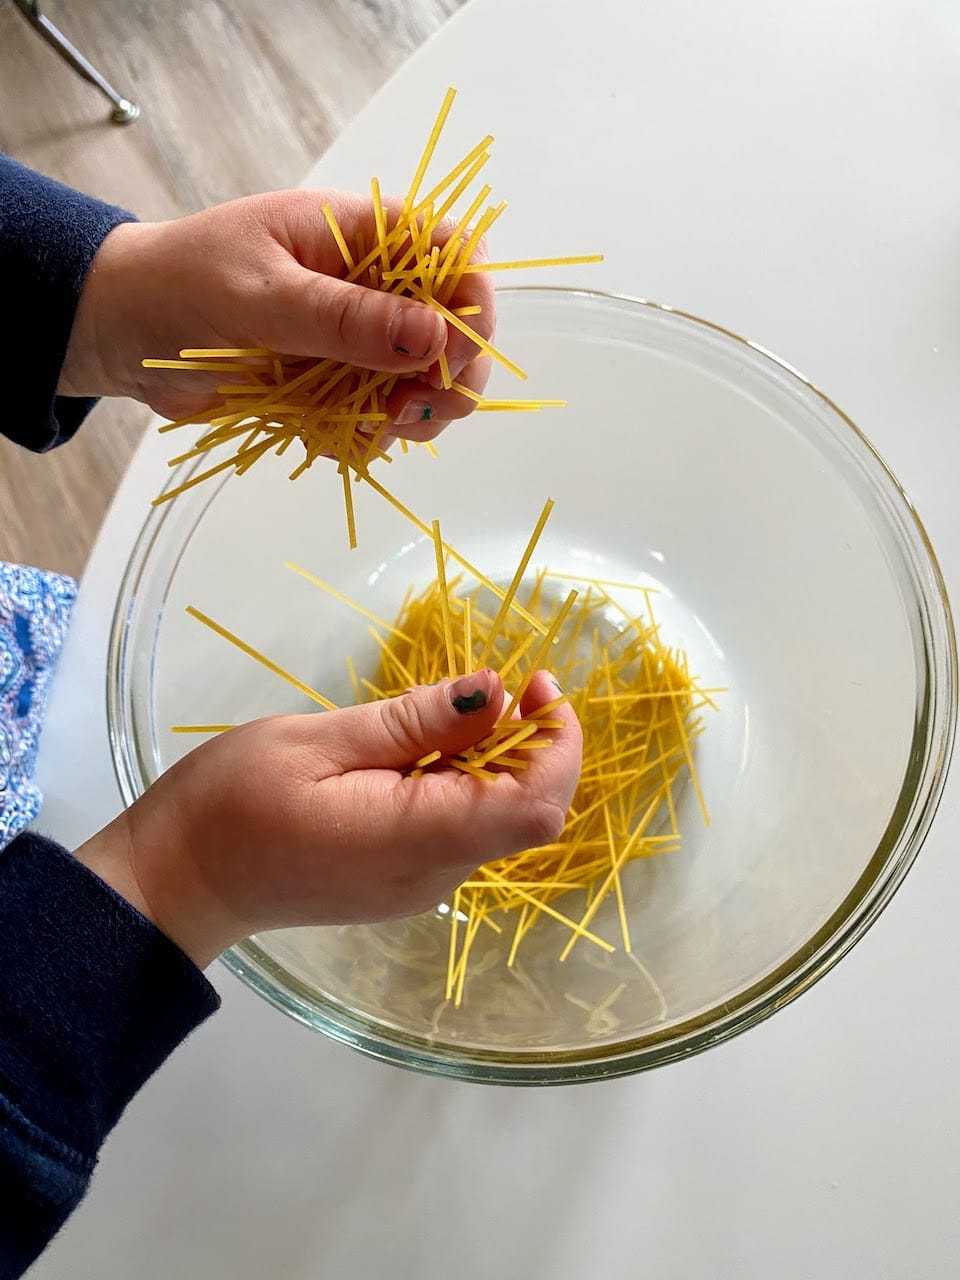 child breaking up spaghetti noodles over clear bowl